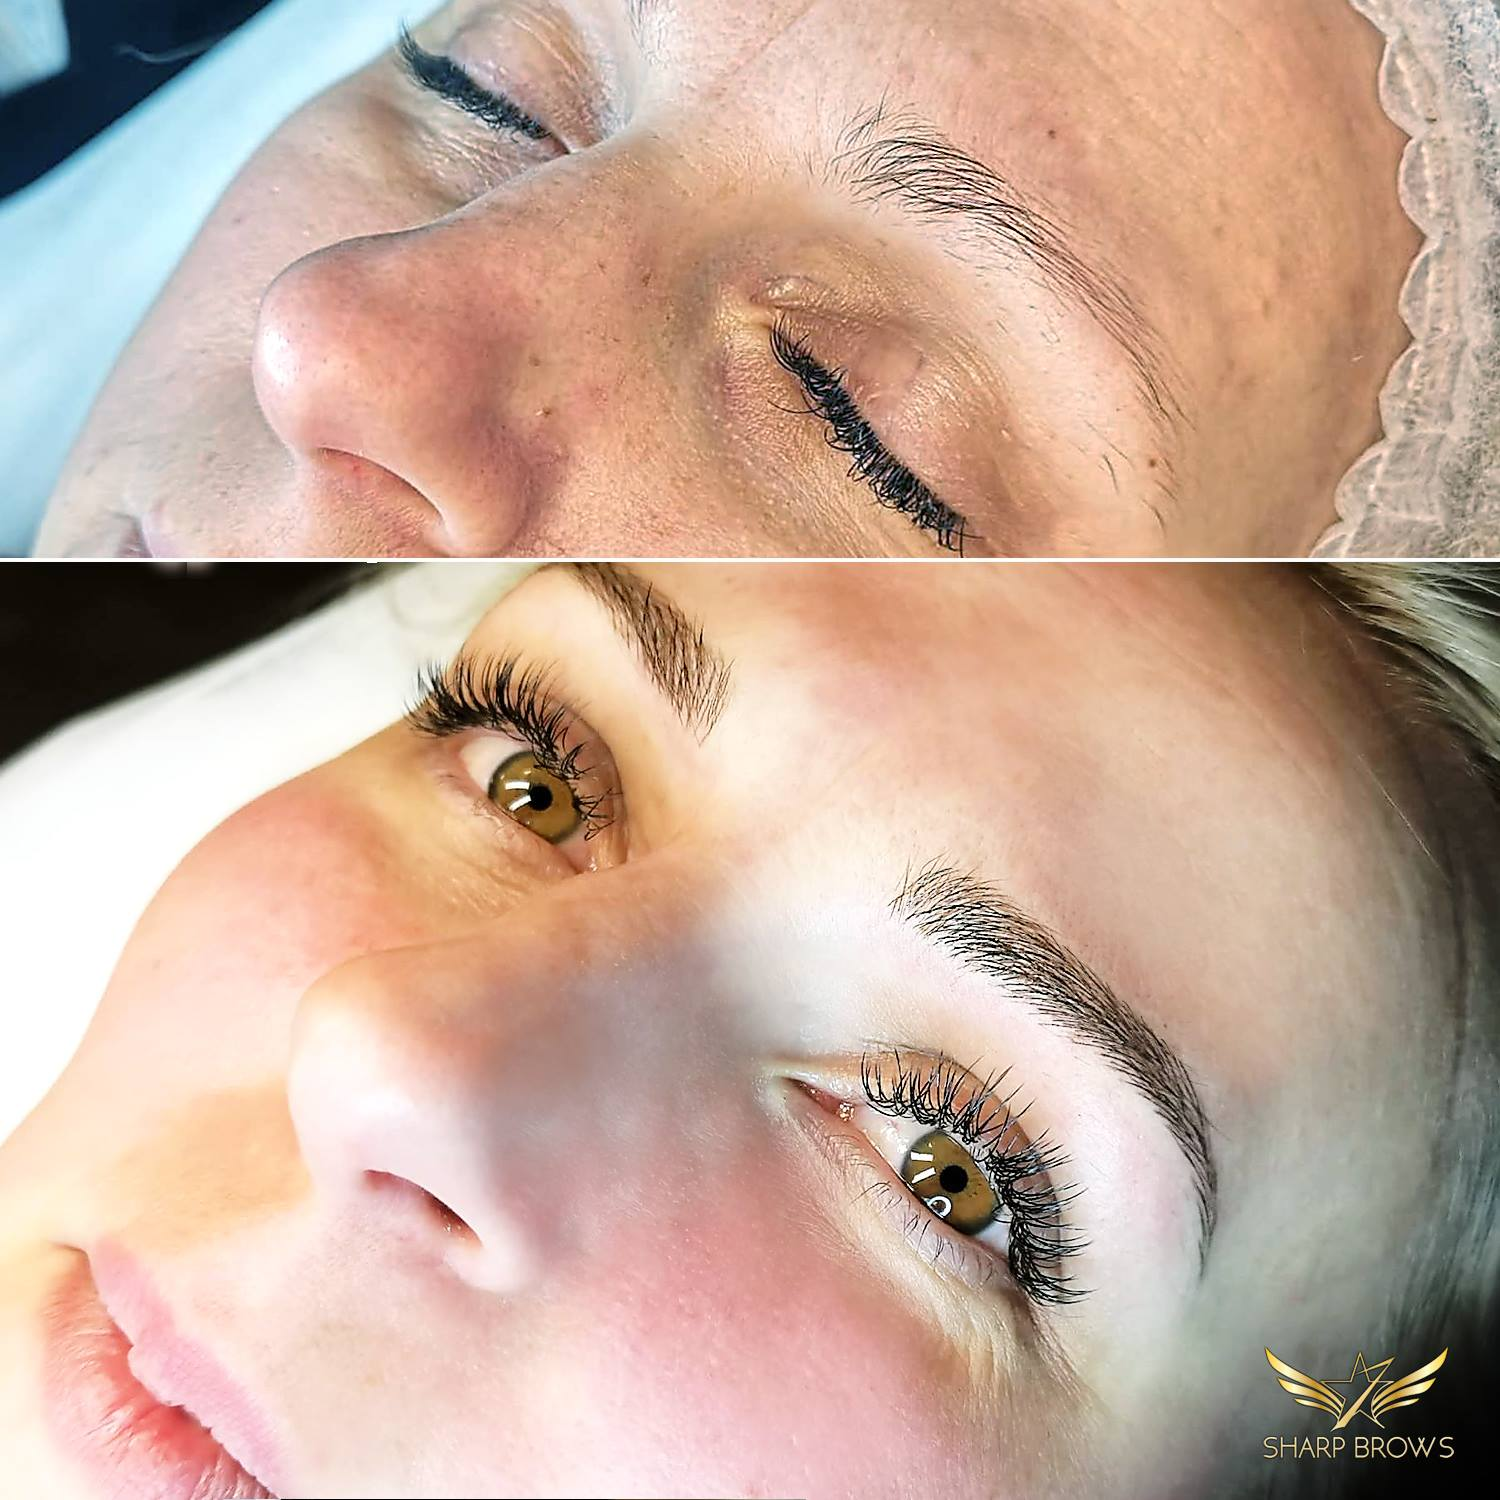 Light microblading - How natural microblading can get - the ultimate is of course the Light microblading.